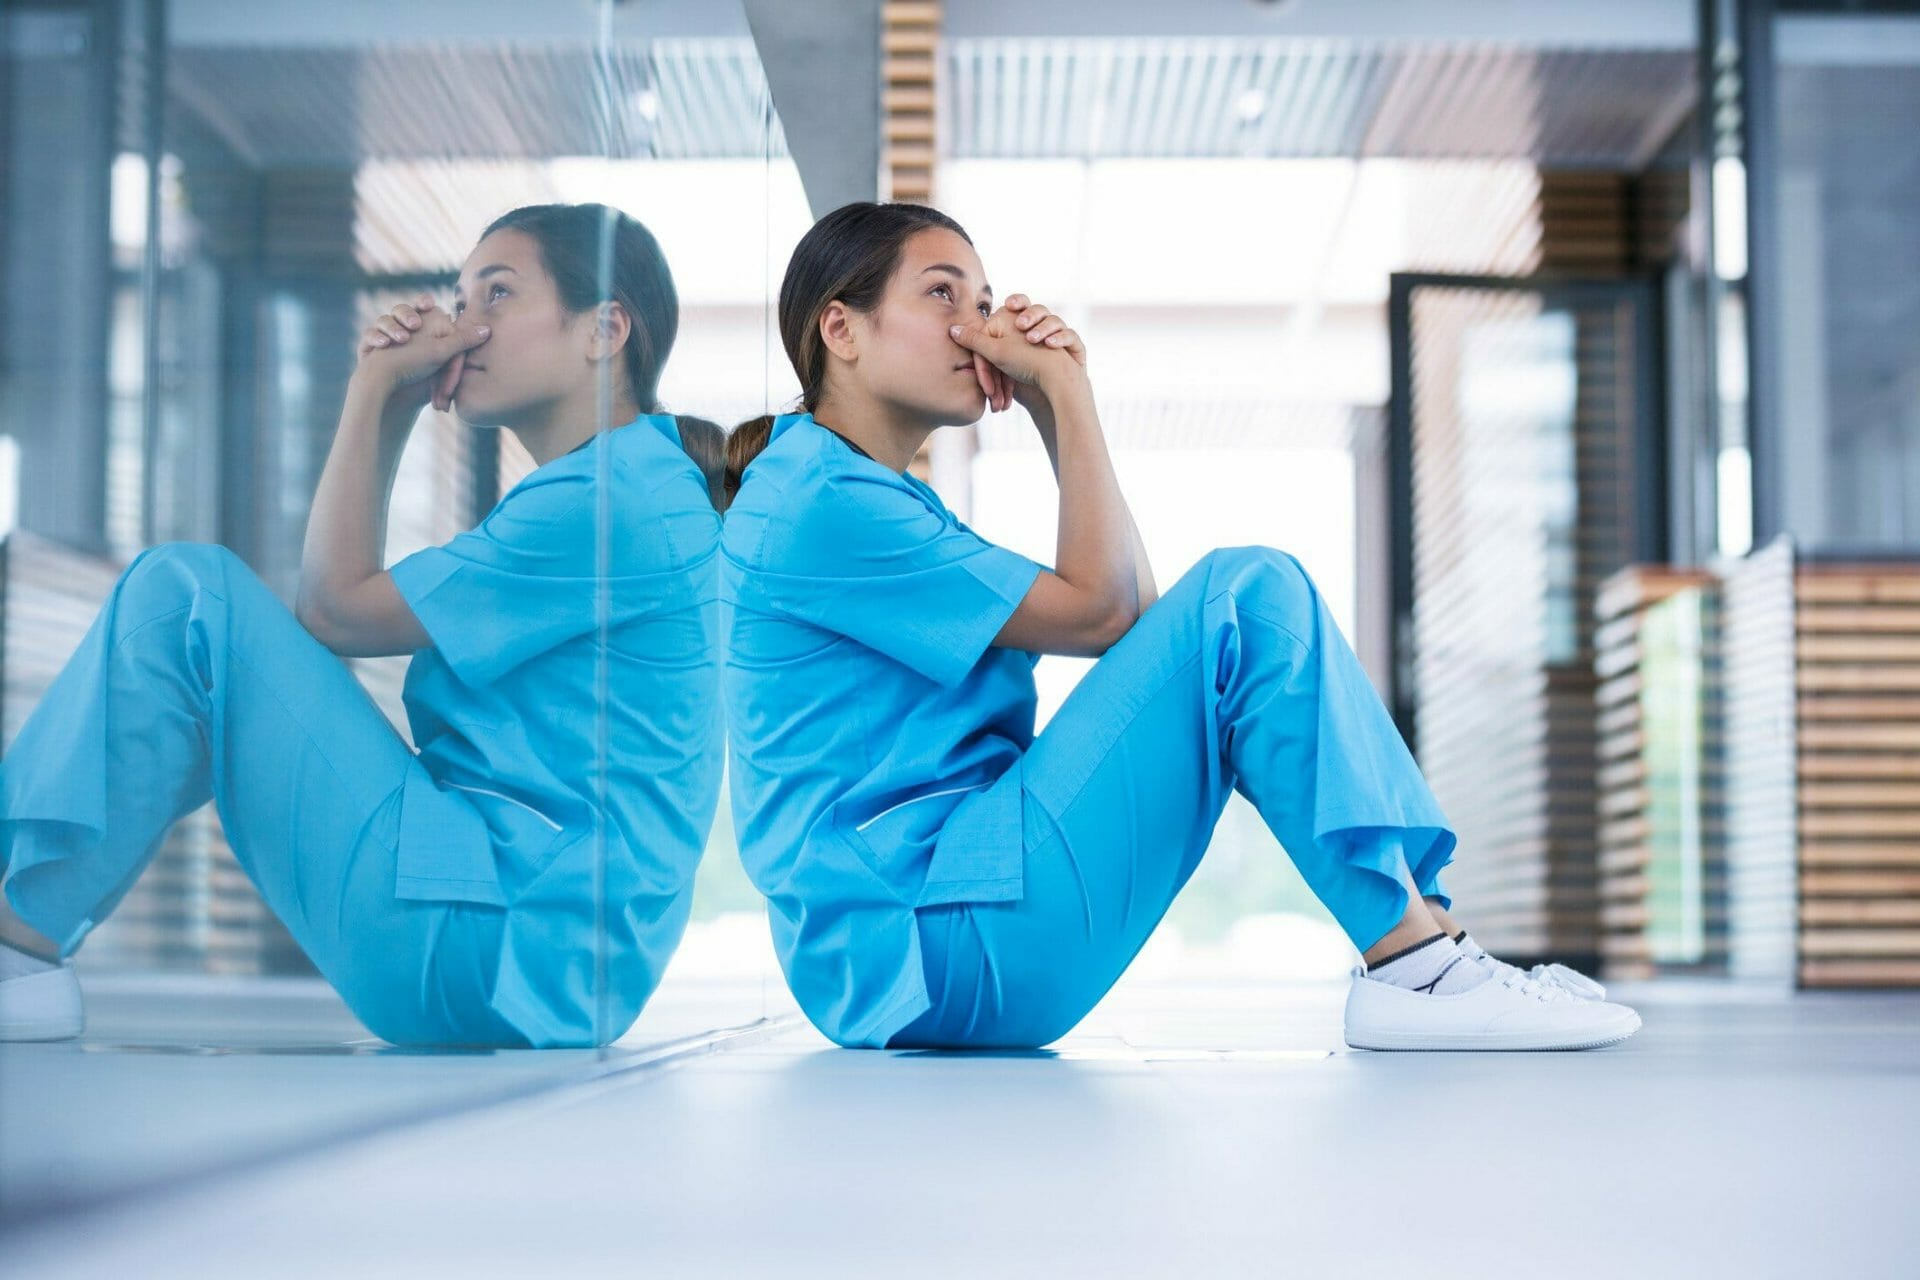 Professional Burnout vs. Compassion Fatigue vs. Vicarious Traumatization in the Veterinary Business